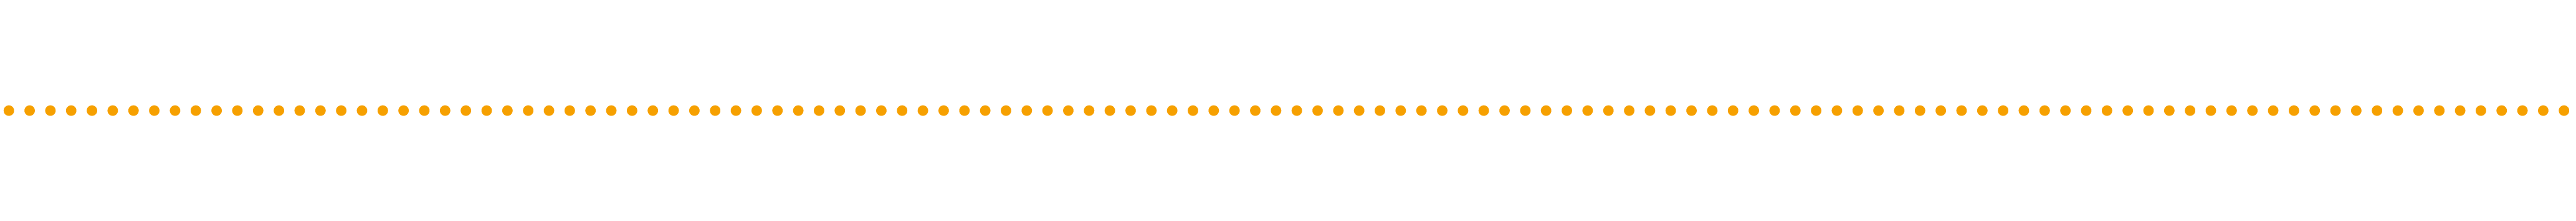 Divider line-yellow dots